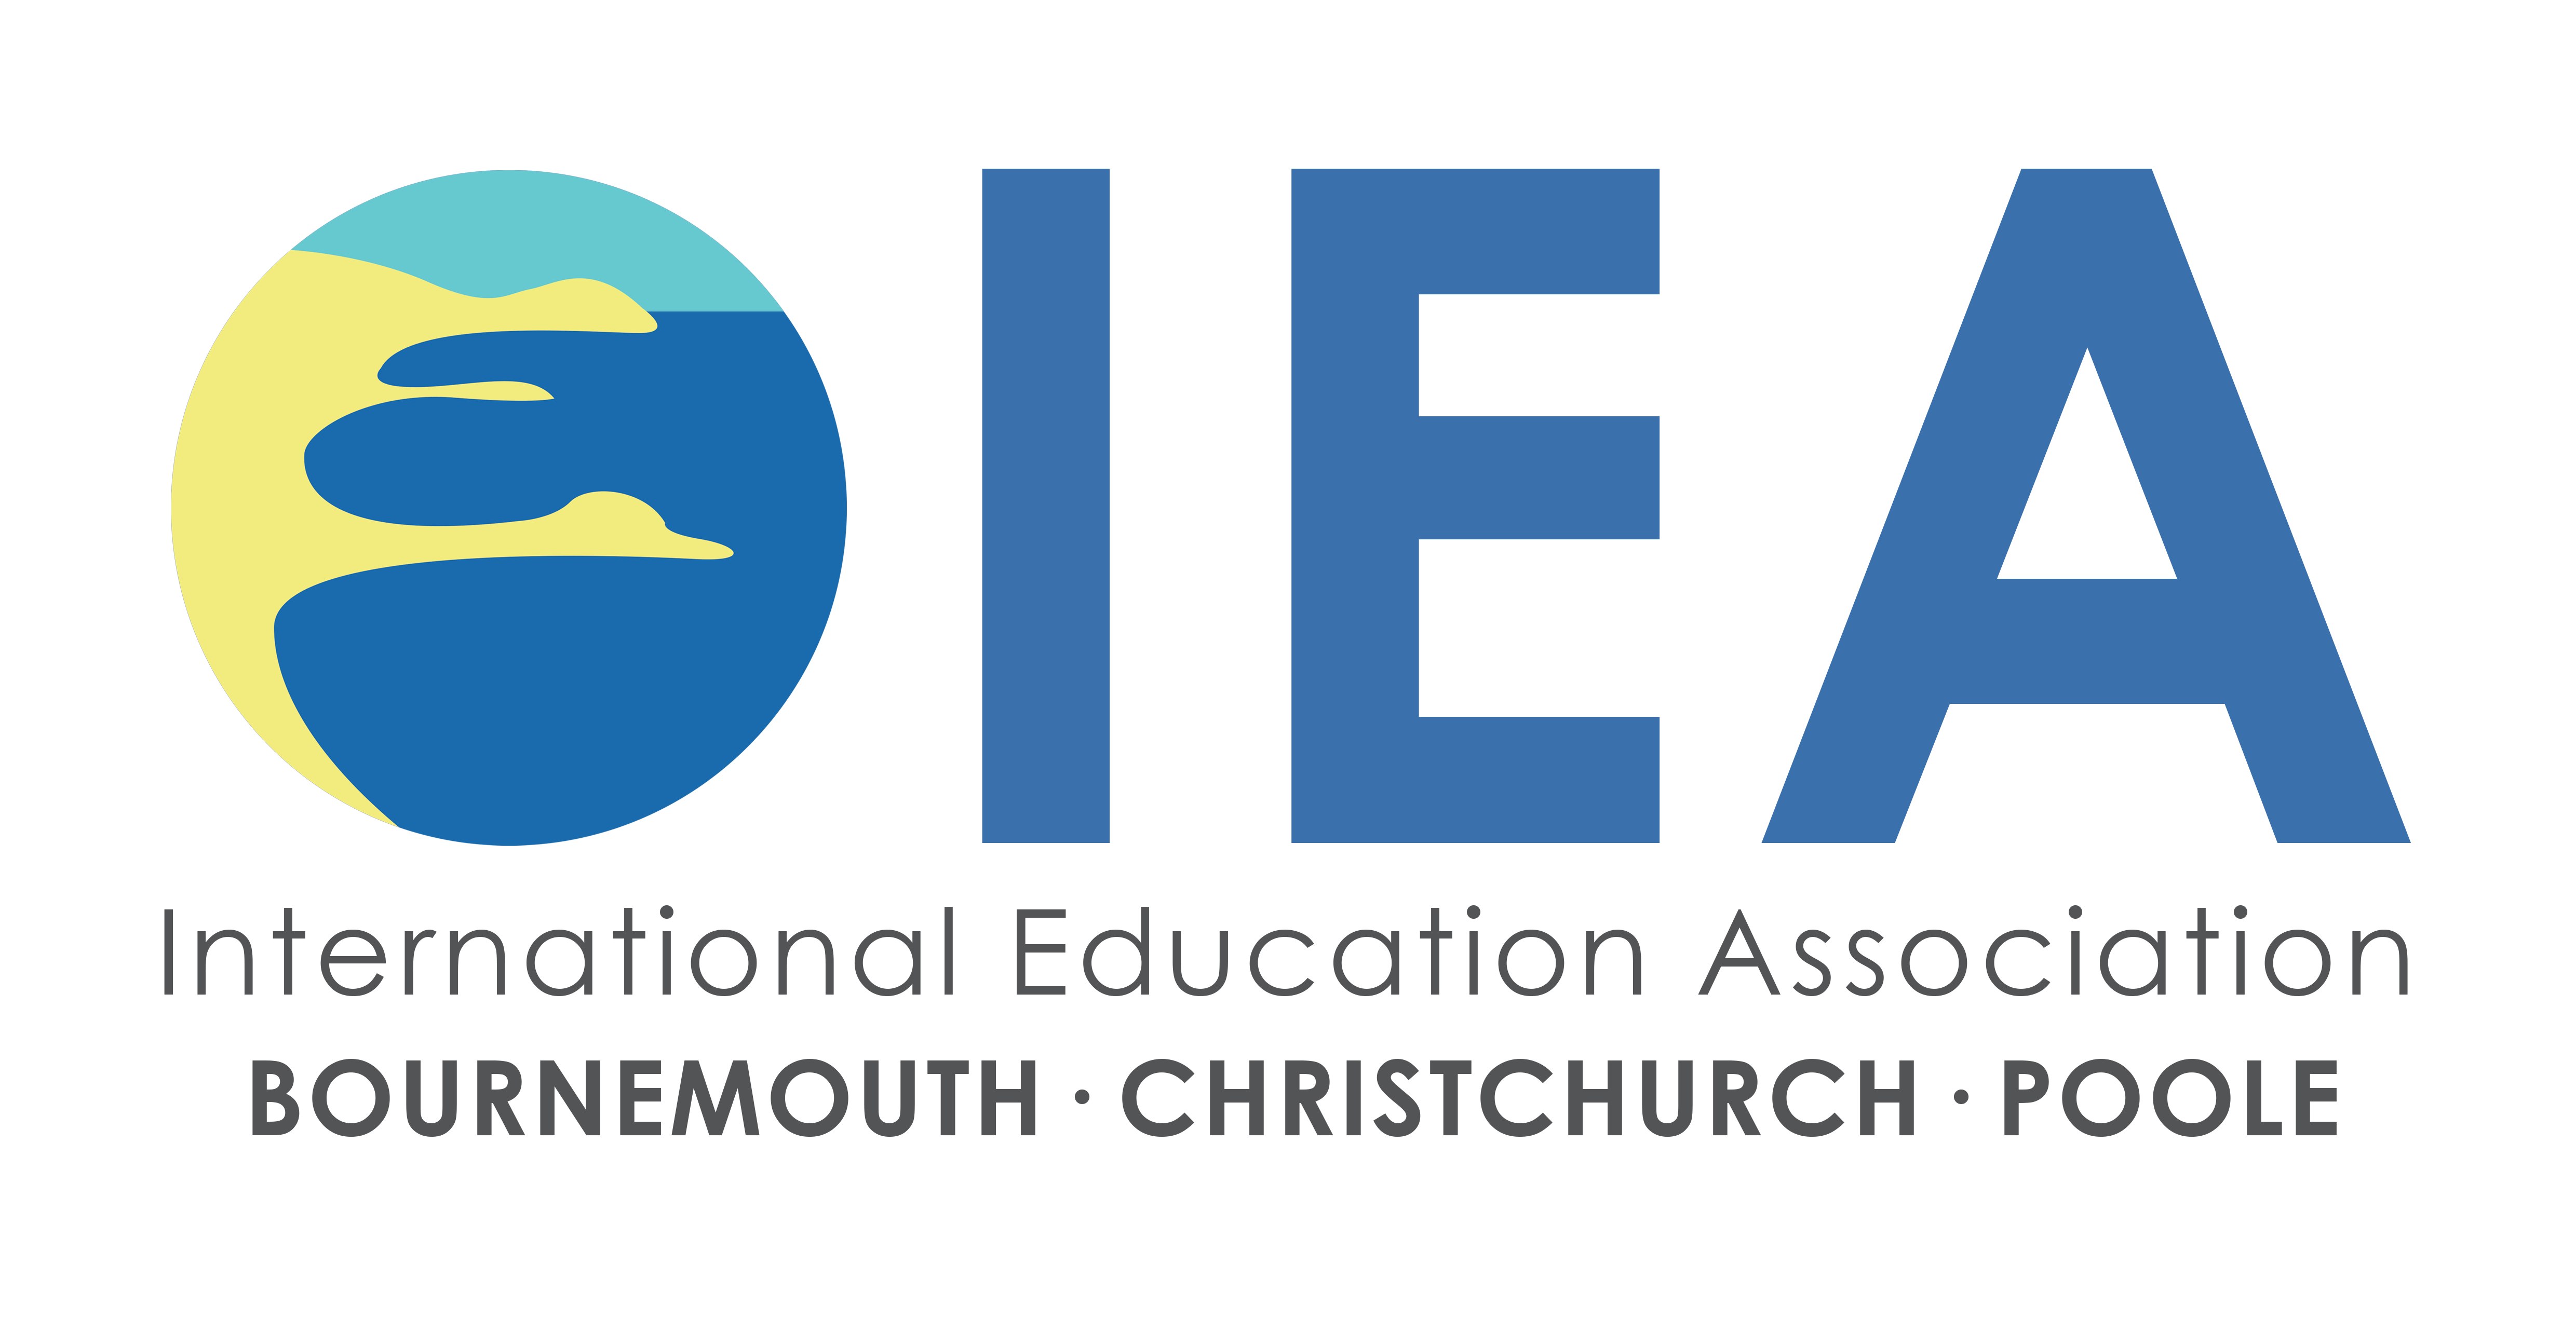 International Education Association